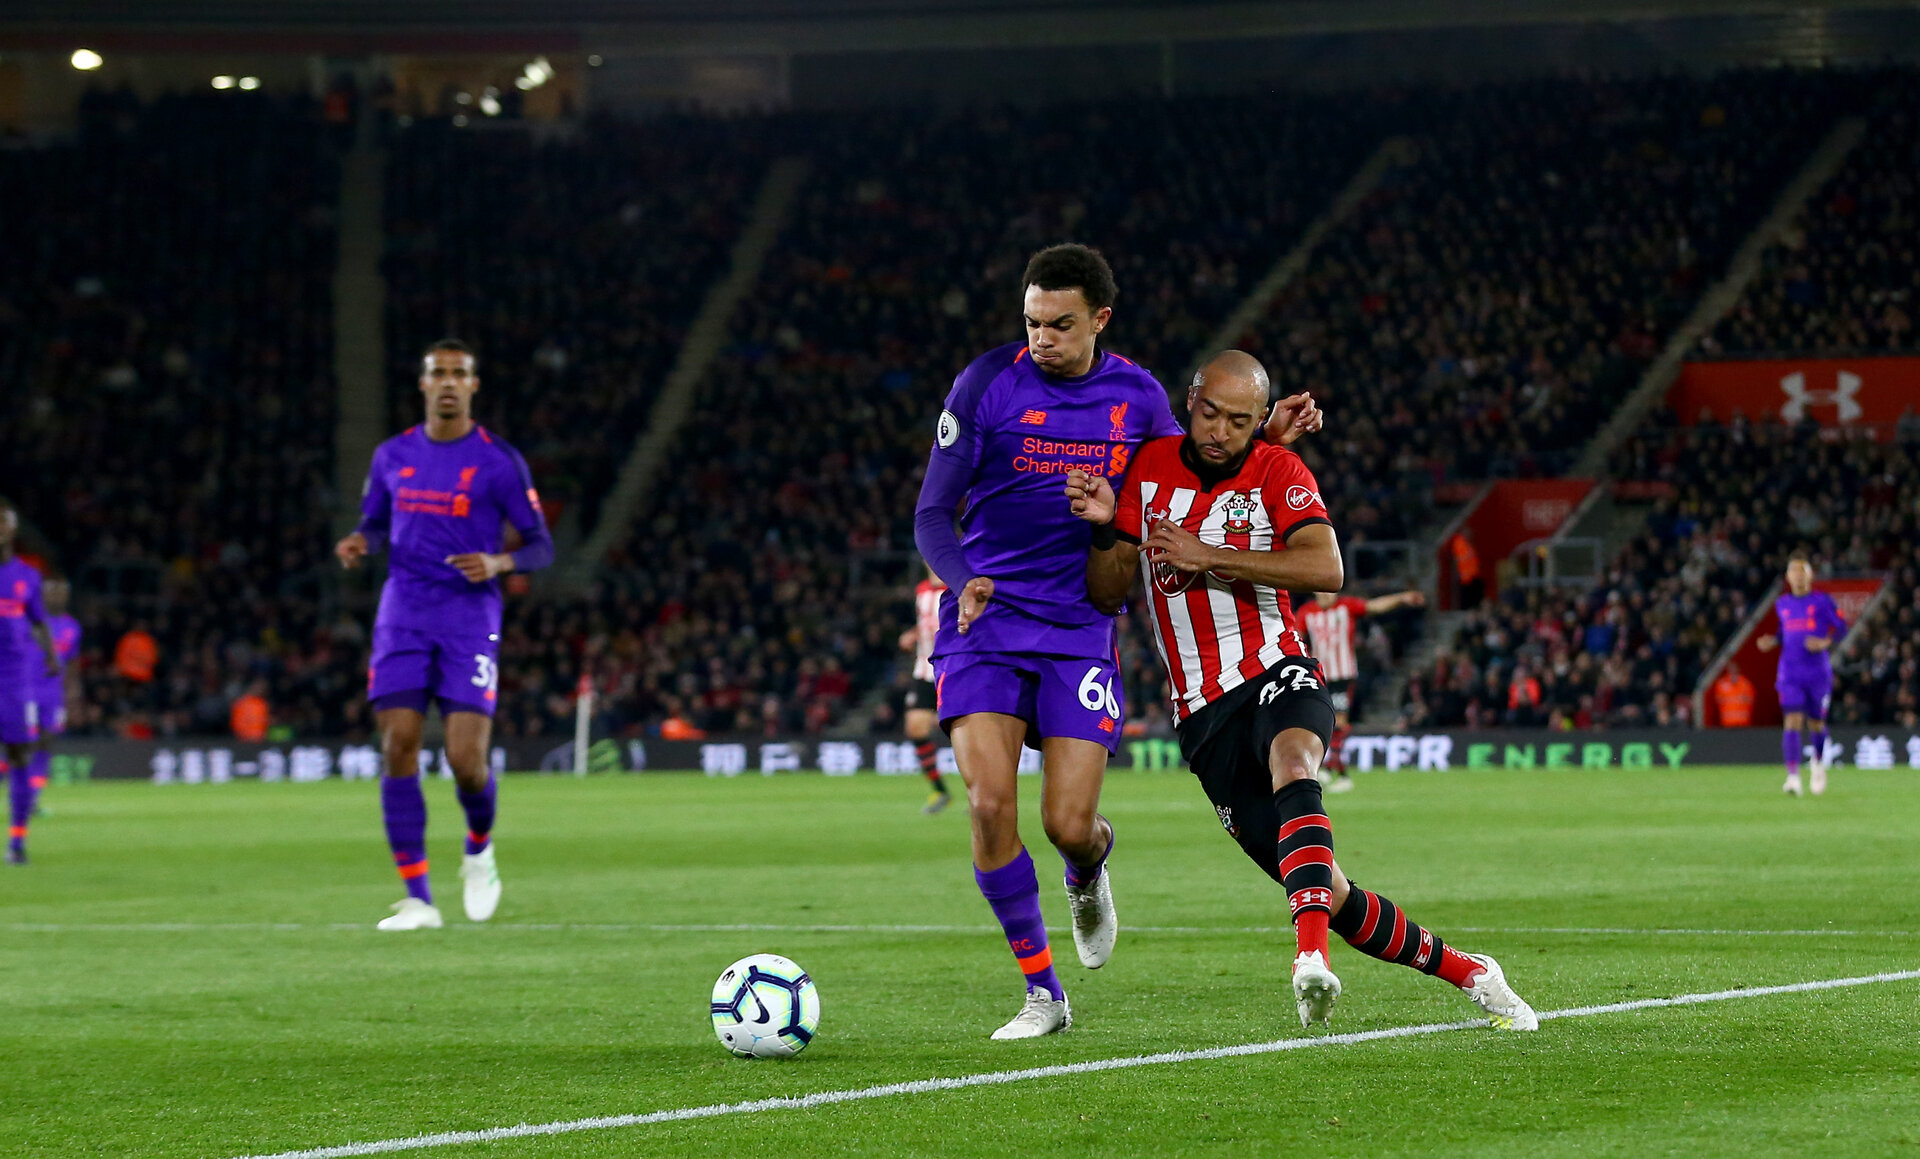 SOUTHAMPTON, ENGLAND - APRIL 05: Nathan Redmond(R) of Southampton and Trent Alexander-Arnold of Liverpool during the Premier League match between Southampton FC and Liverpool FC at St Mary's Stadium on April 6, 2019 in Southampton, United Kingdom. (Photo by Matt Watson/Southampton FC via Getty Images)